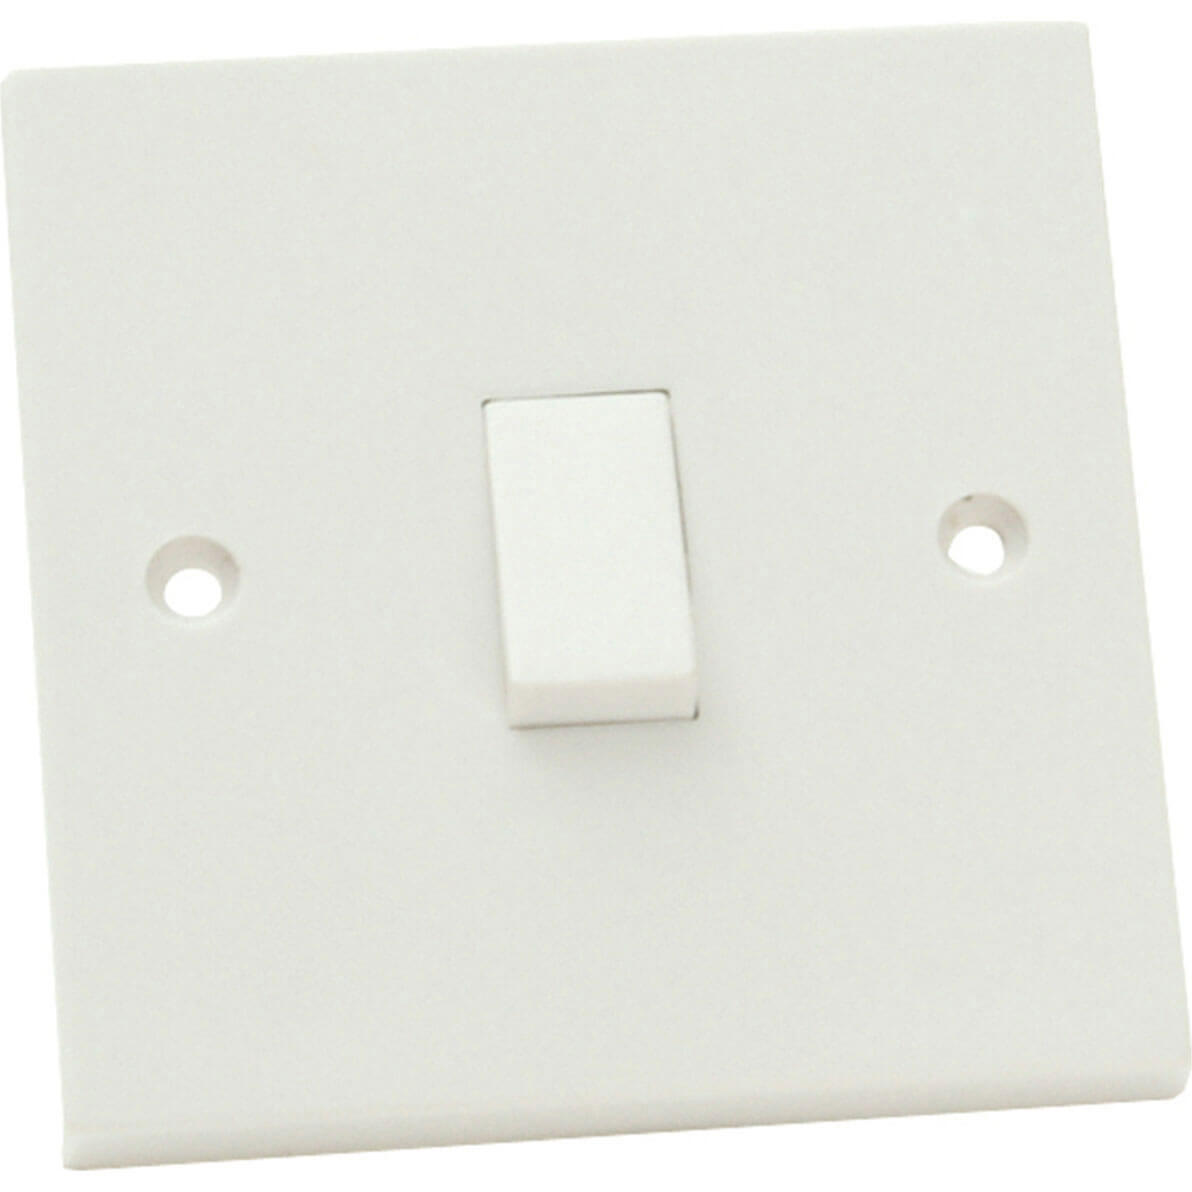 Smj 1 Gang 1 Way Light Switch